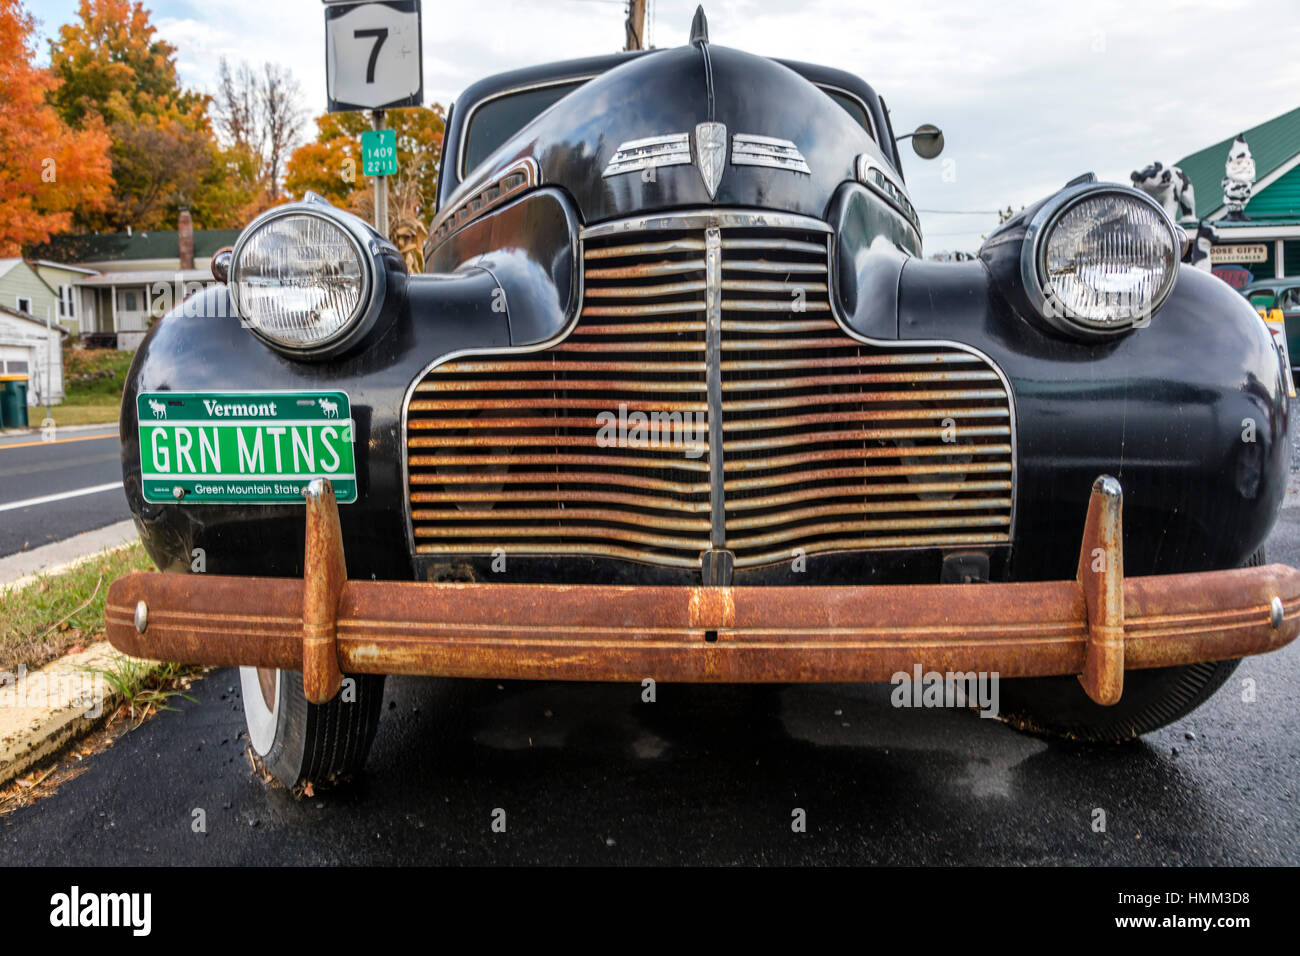 Close up view of antique car with Vermont License Plates reading ...